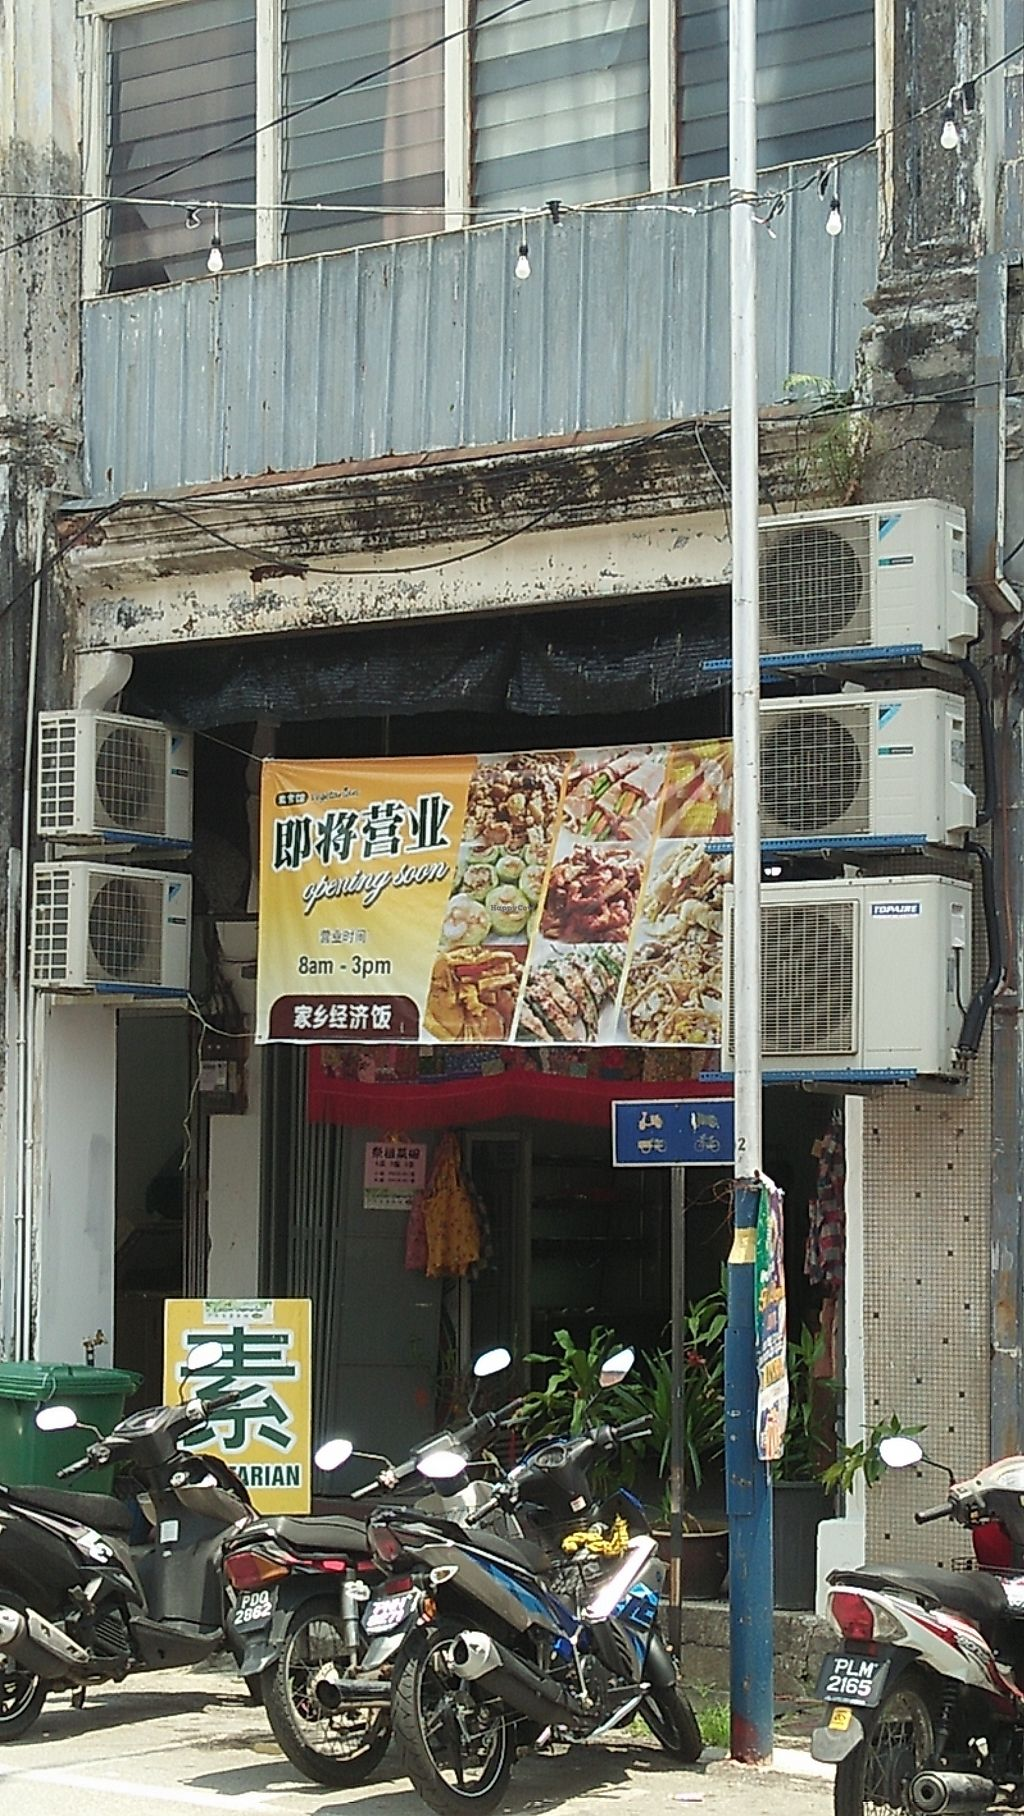 """Photo of Laizzen Vegetarian Cafe  by <a href=""""/members/profile/rickydaveggie"""">rickydaveggie</a> <br/>22 Lebuh Gereja (Church St)  <br/> March 28, 2018  - <a href='/contact/abuse/image/112113/377086'>Report</a>"""